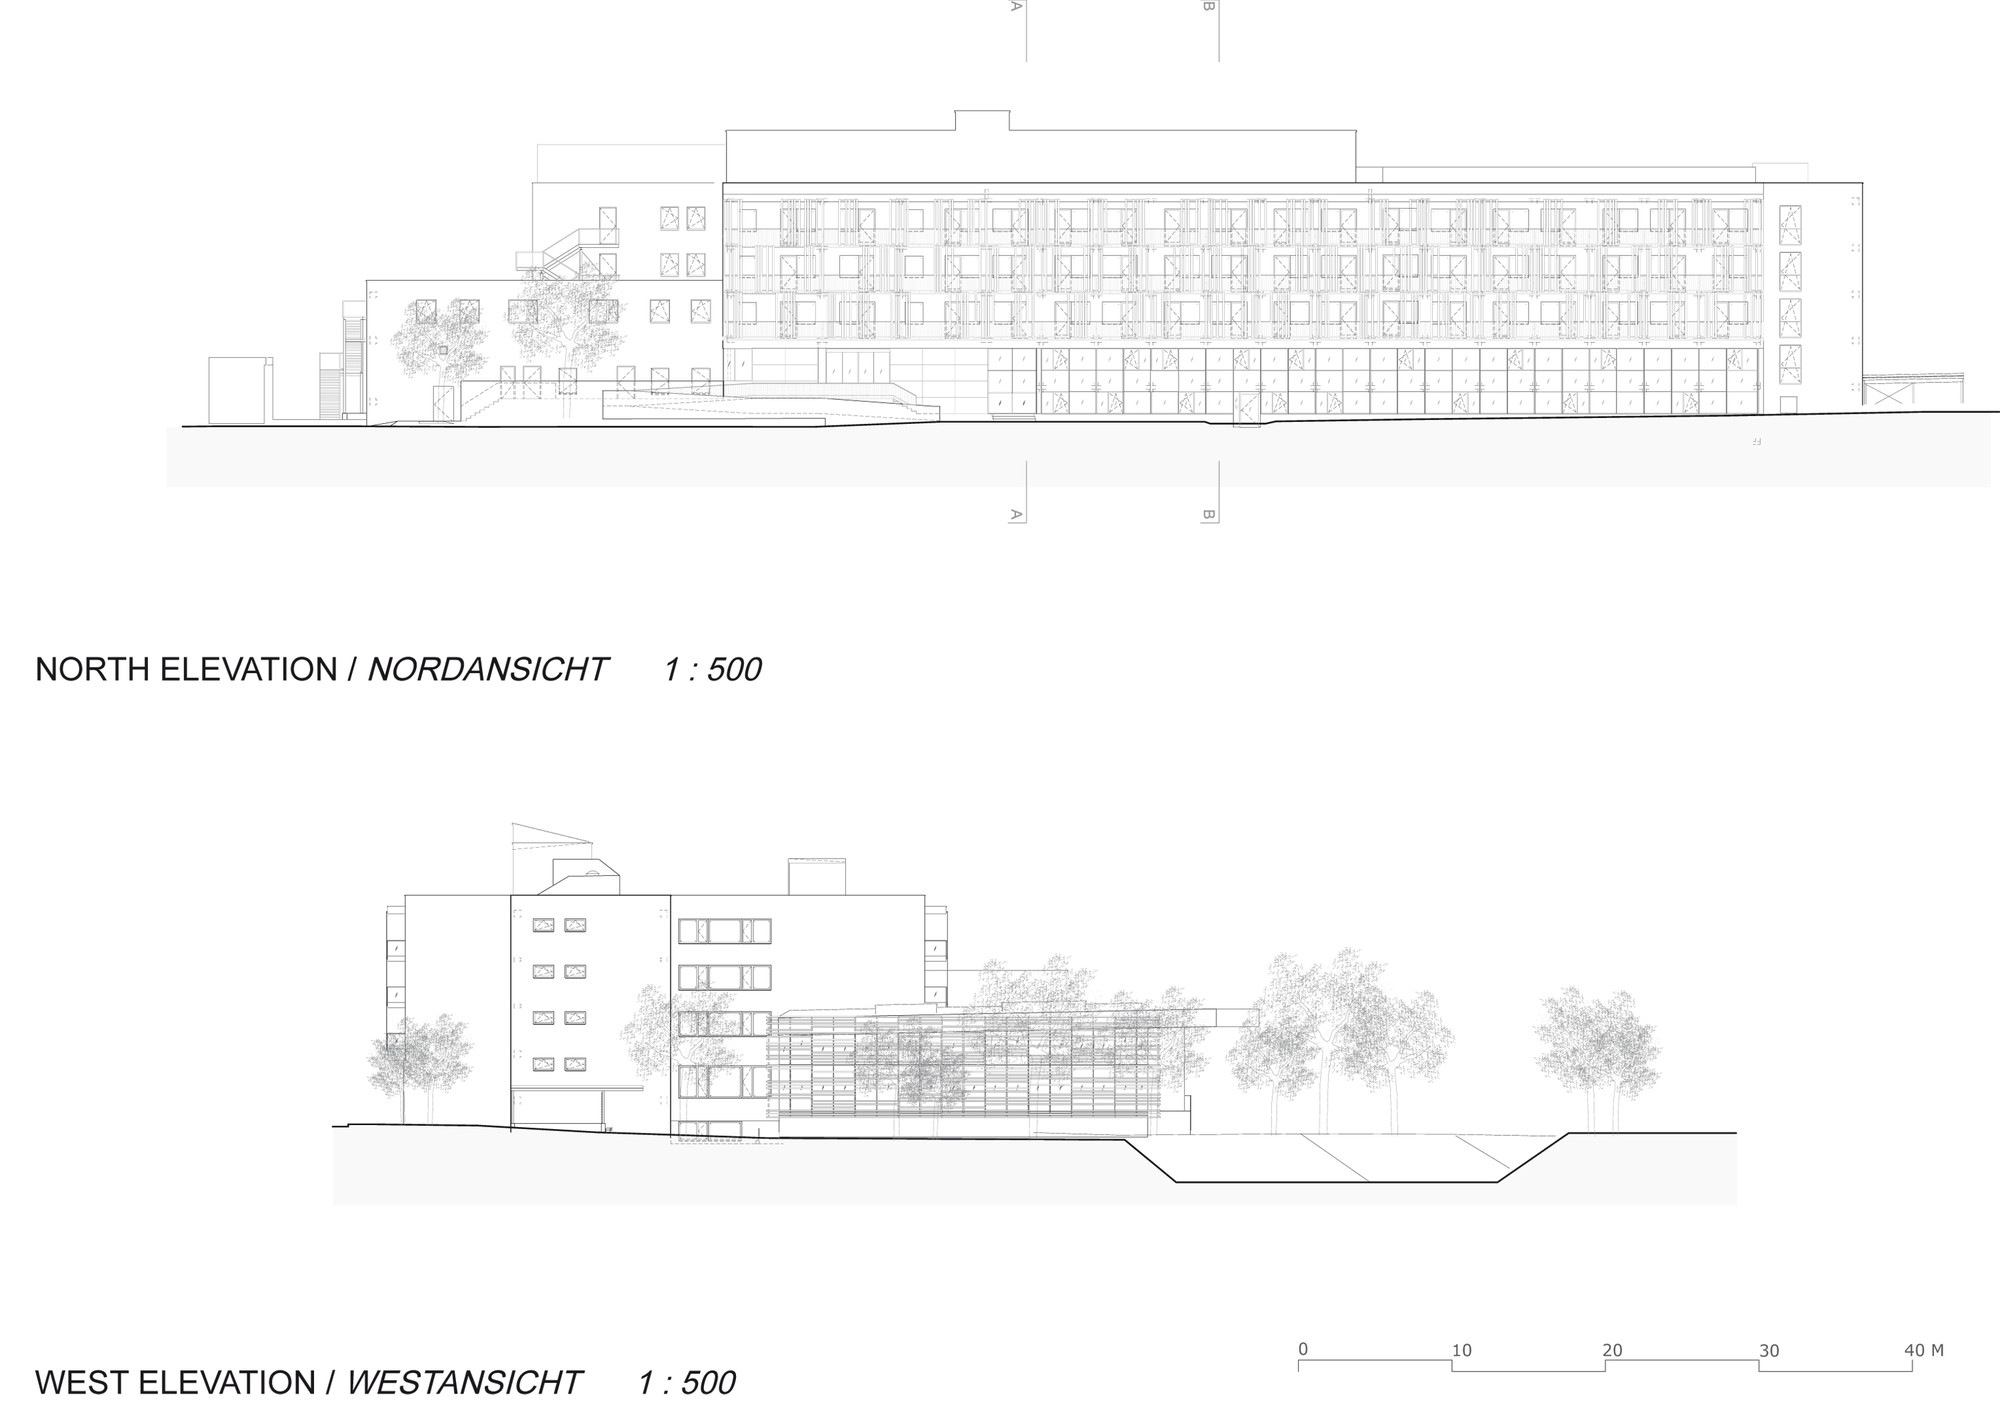 Elevations: North, West